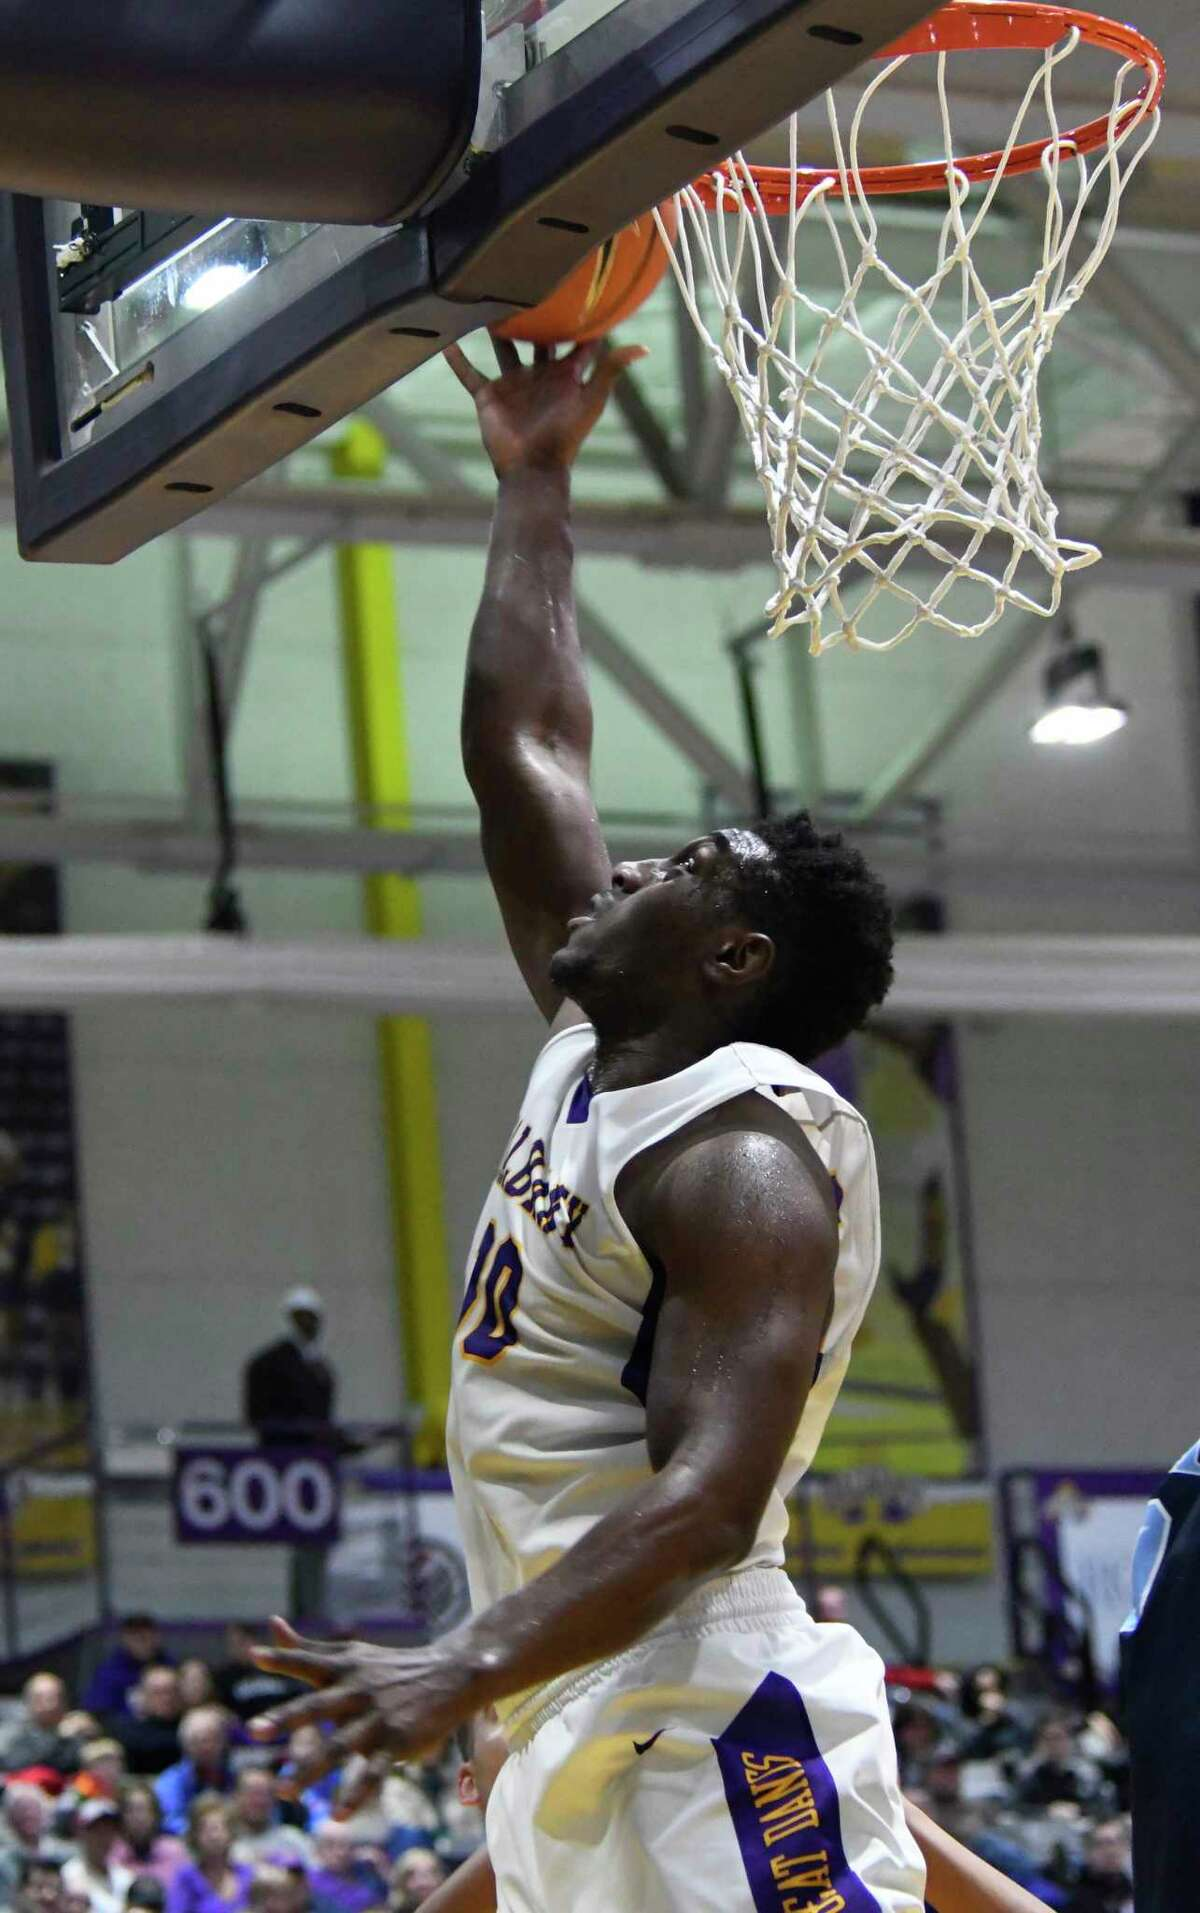 UAlbany's Travis Charles takes a shot on a breakaway during a game against Maine on Saturday, Feb. 24, 2018, at SEFCU Arena in Albany, N.Y. UAlbany finished out with a win over Maine 89-79. (Jenn March, Special to the Times Union)